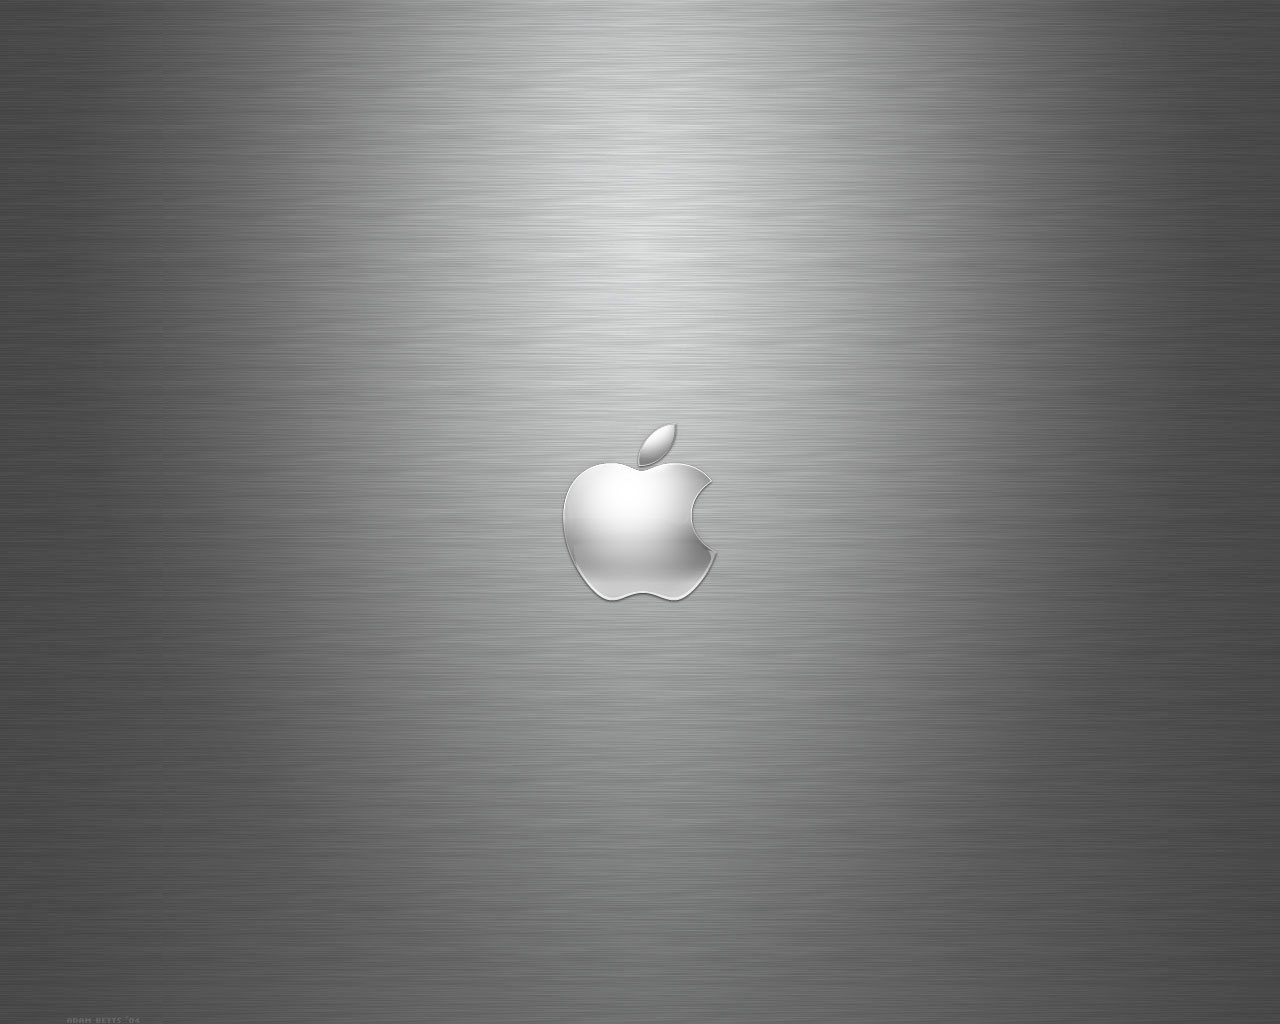 apple metal plate wallpapers | apple metal plate stock photos